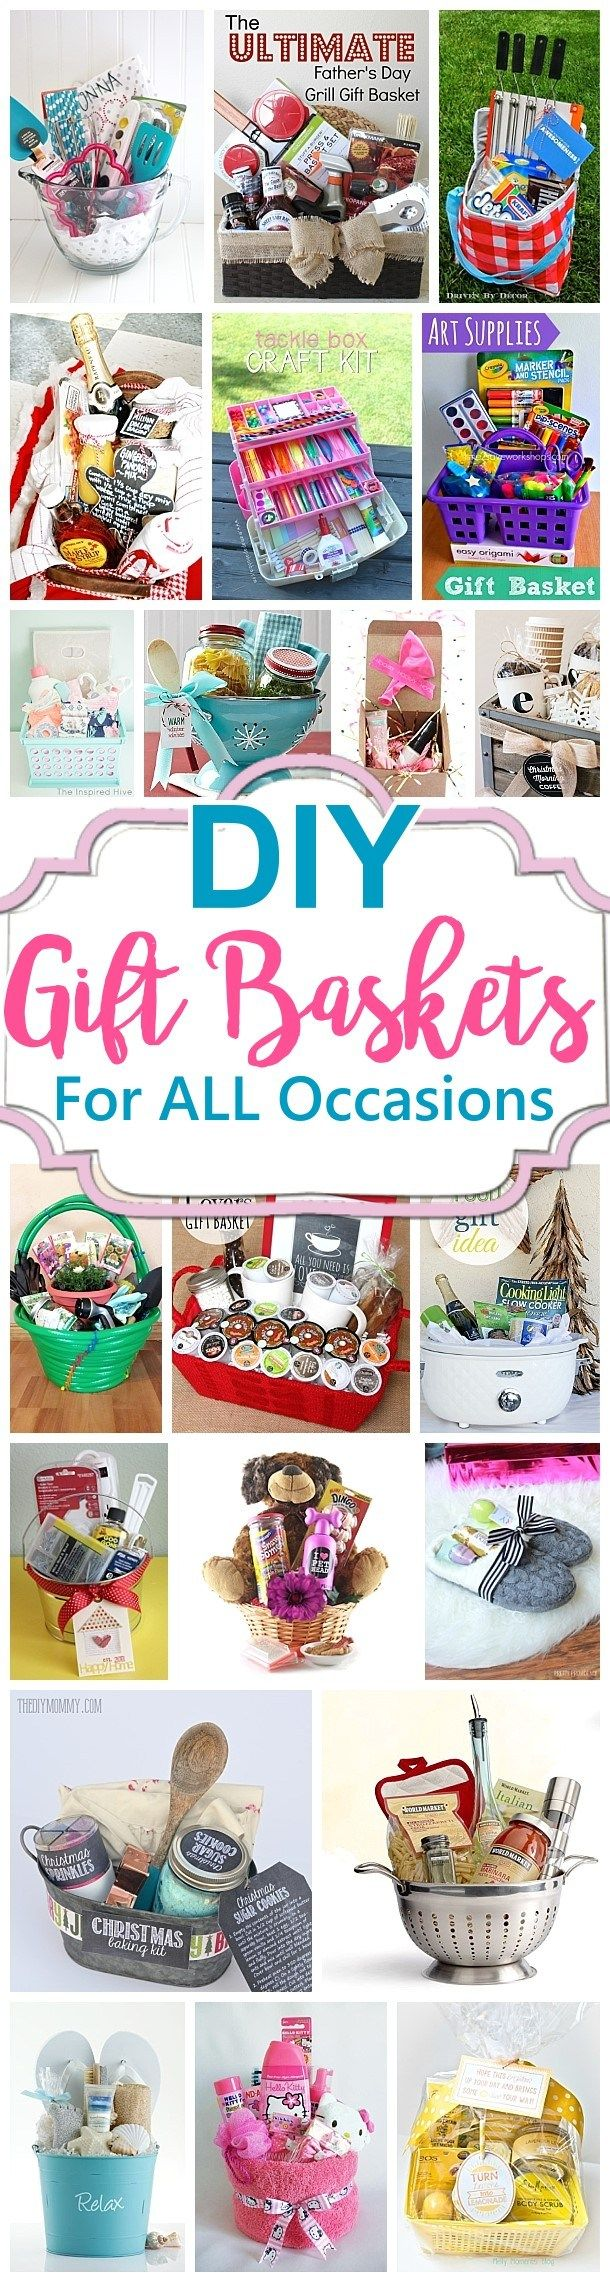 Do it yourself gift basket ideas for any and all occasions basket diy your photo charms compatible with pandora bracelets make your gifts special do it yourself gift baskets ideas for any and all occasions perfect diy solutioingenieria Image collections